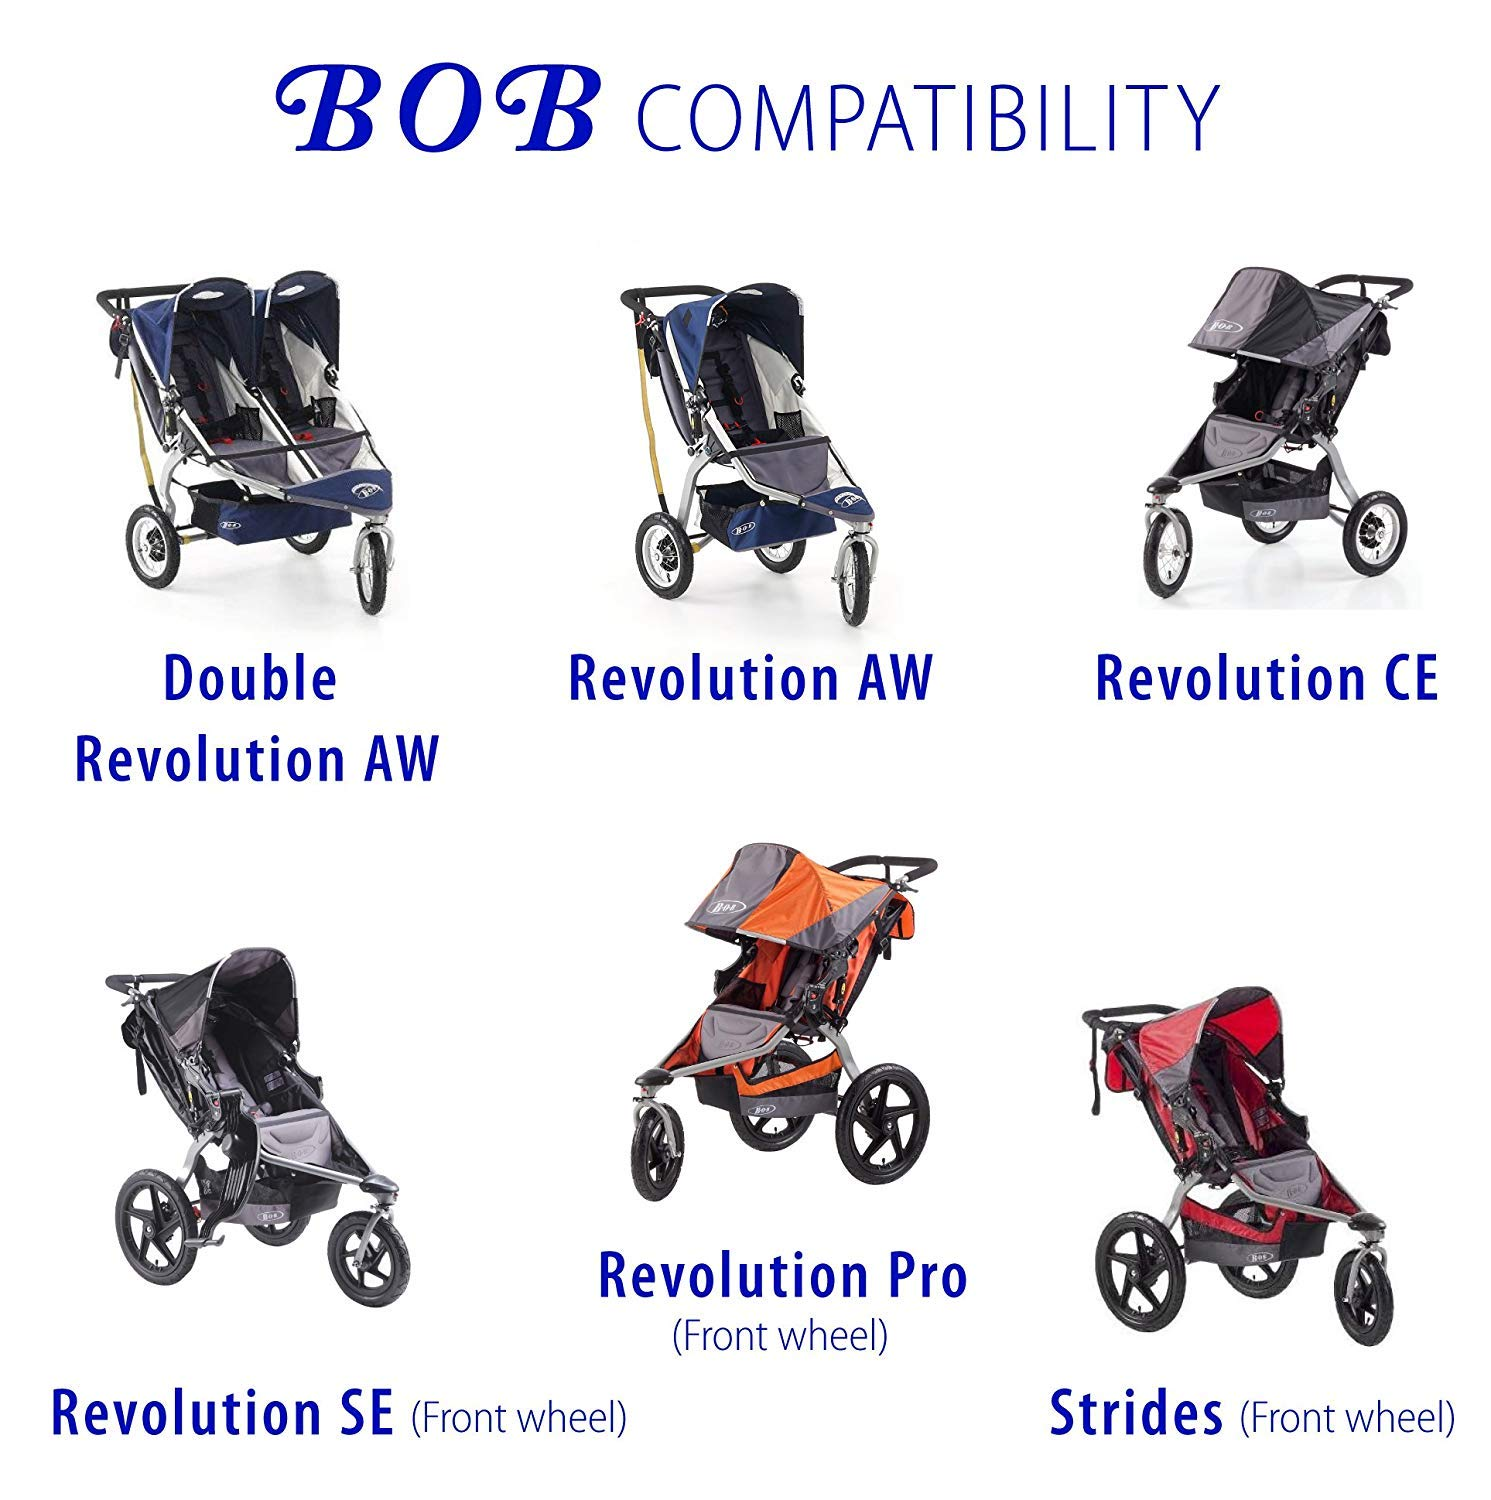 Blaze Childrens Jogger Strollers Pneumatic tires 12 16 ...